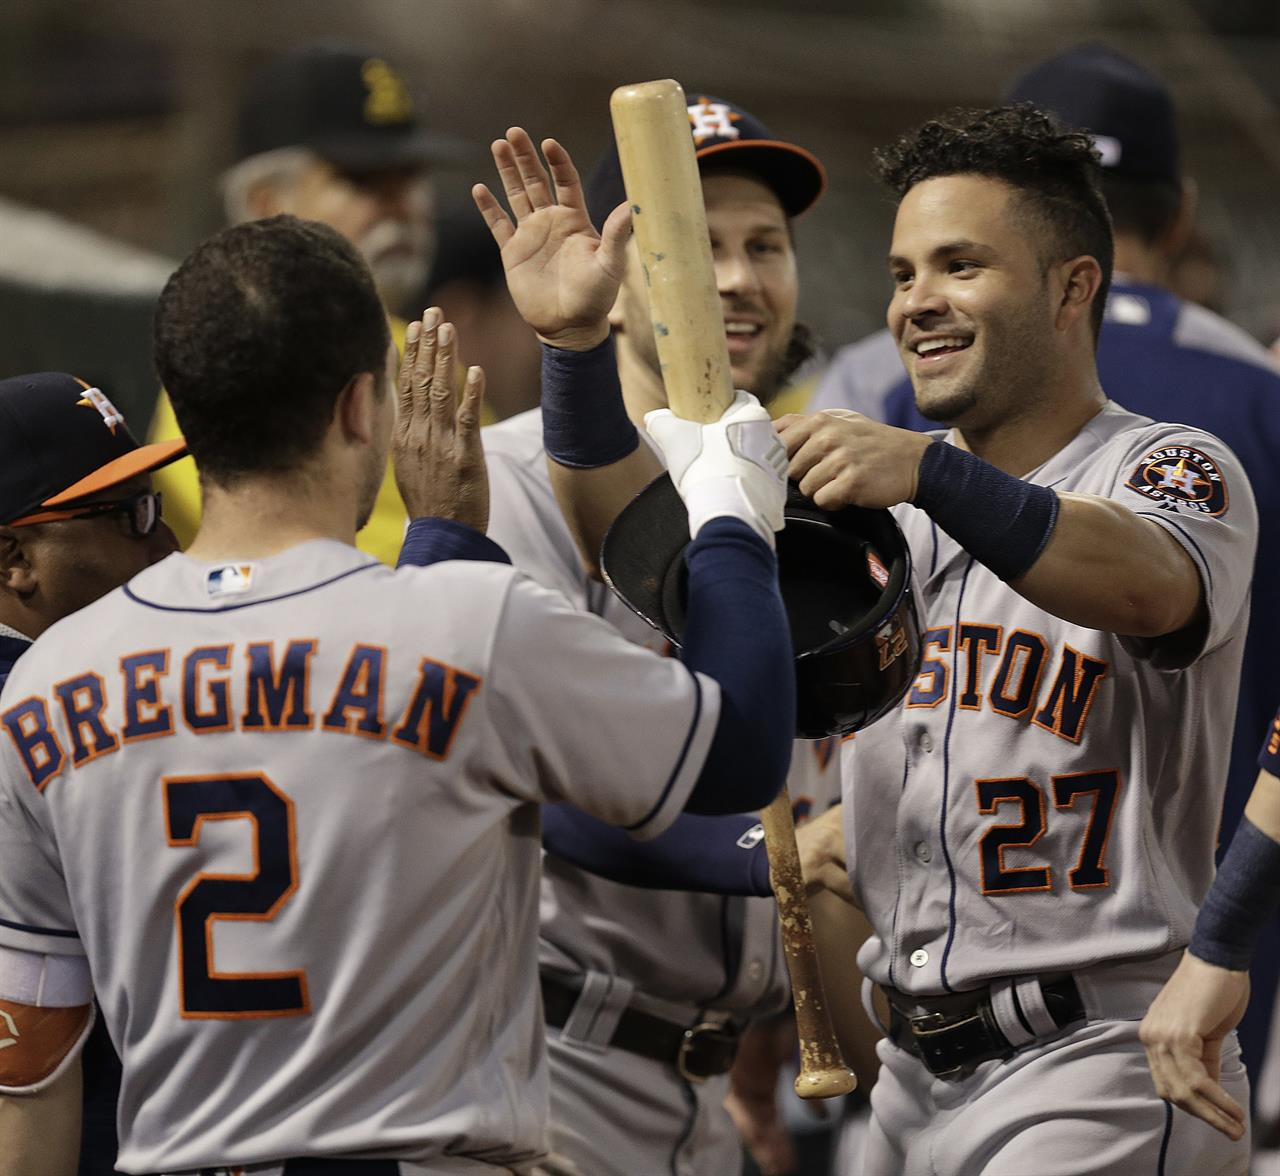 Mike Fiers Astros Trade: Mike Fiers Wins 4th Straight Decision As Astros Beat A's 5